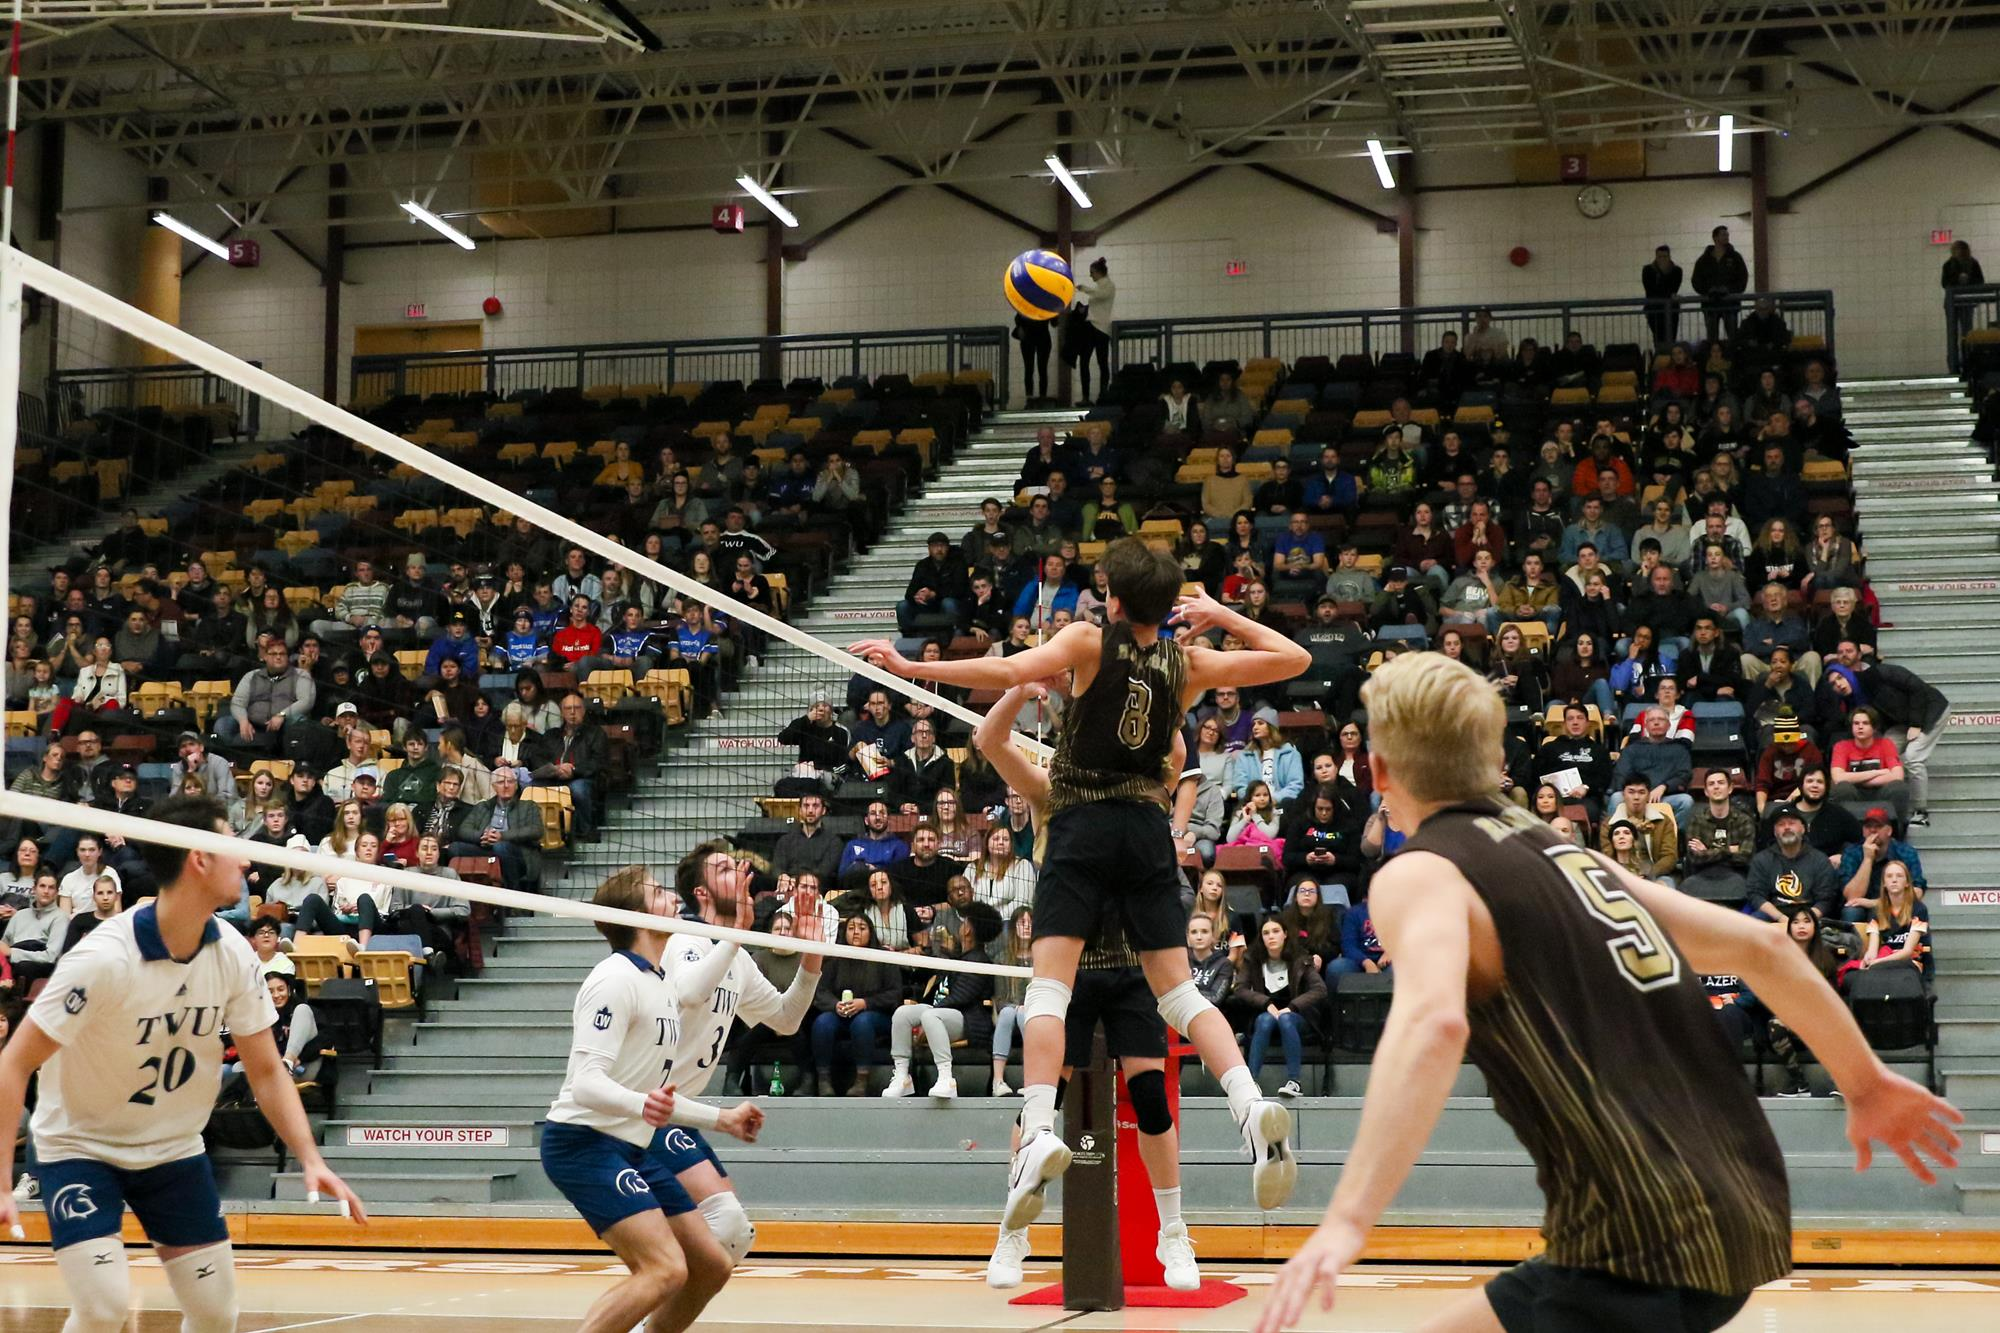 Manitoba Bisons middle Darian Koskie against the Trinity Western Spartans at the Investors Group Athletic Centre on Friday, November 15, 2019 (Dave Mahussier, Bison Sports)